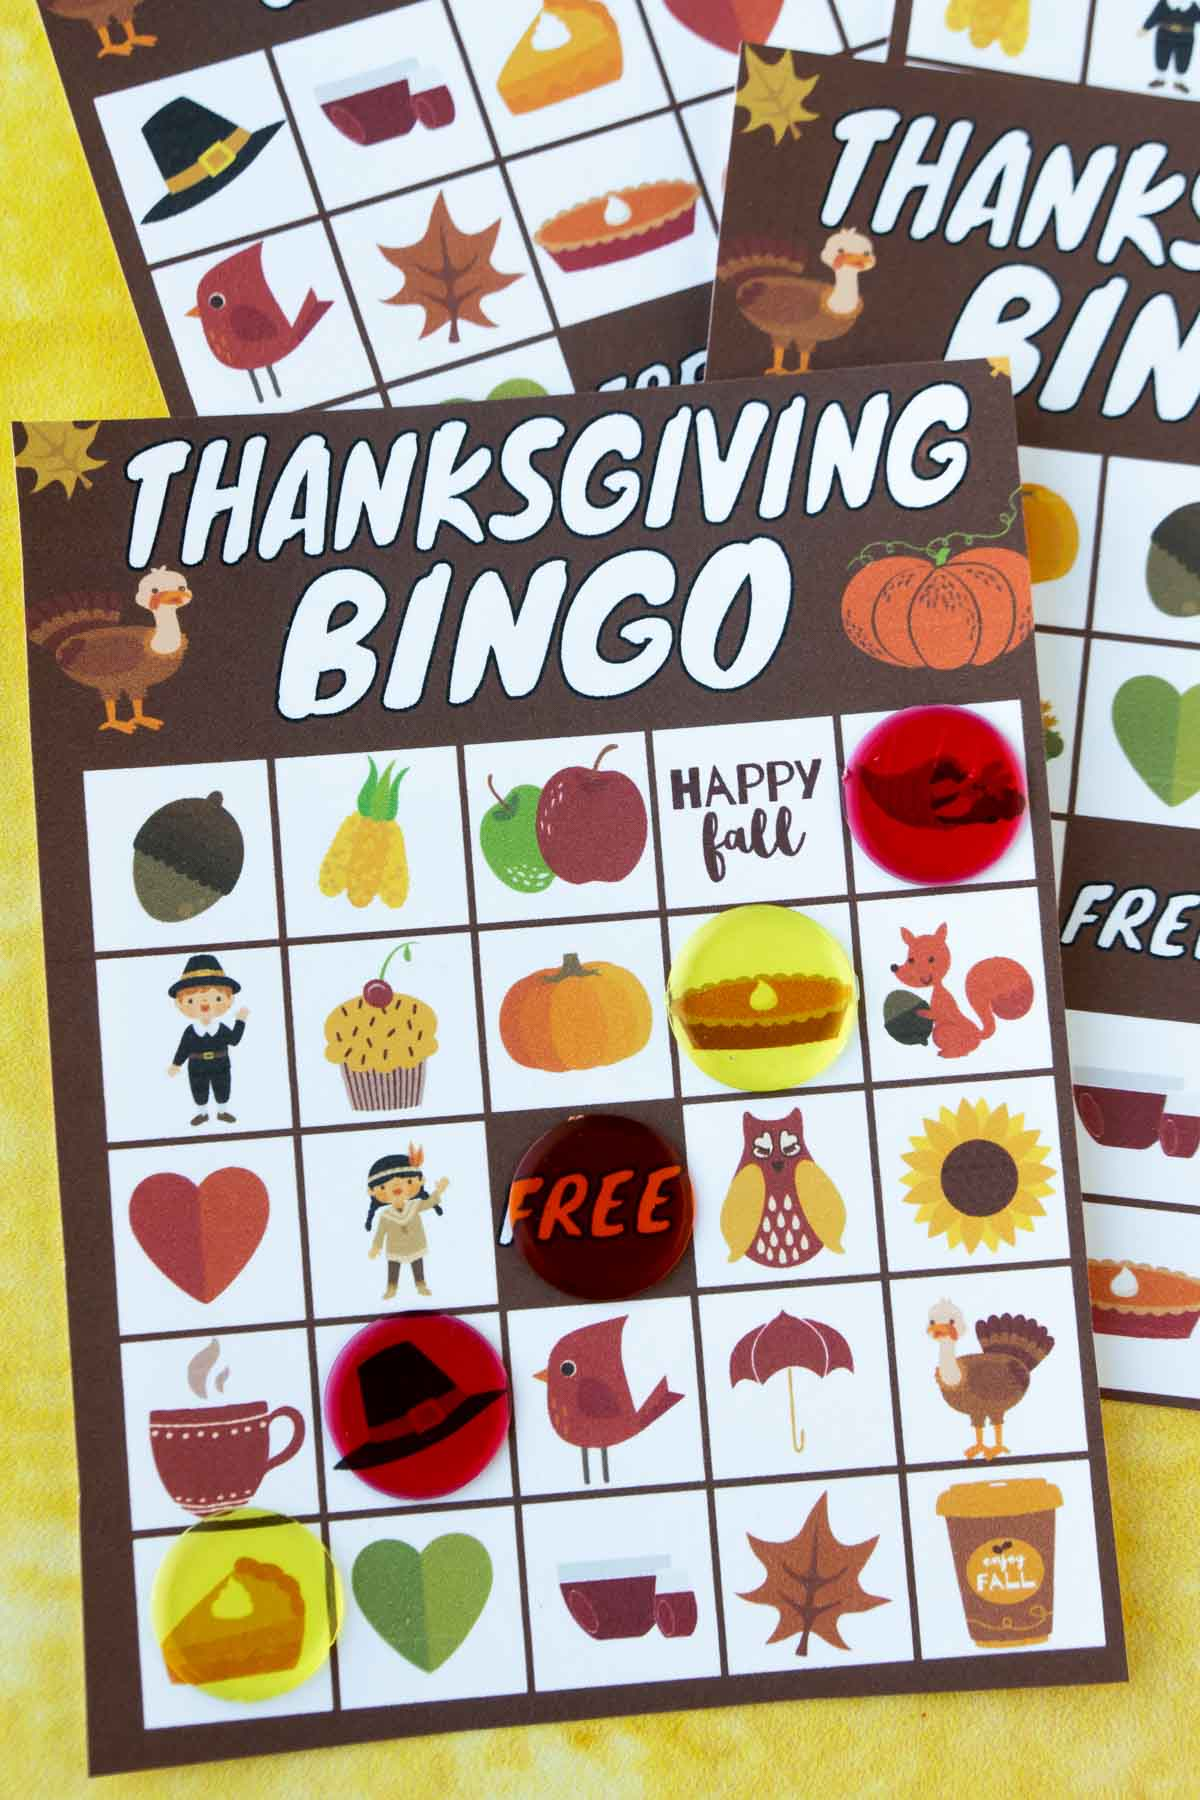 Thanksgiving bingo card with bingo markers